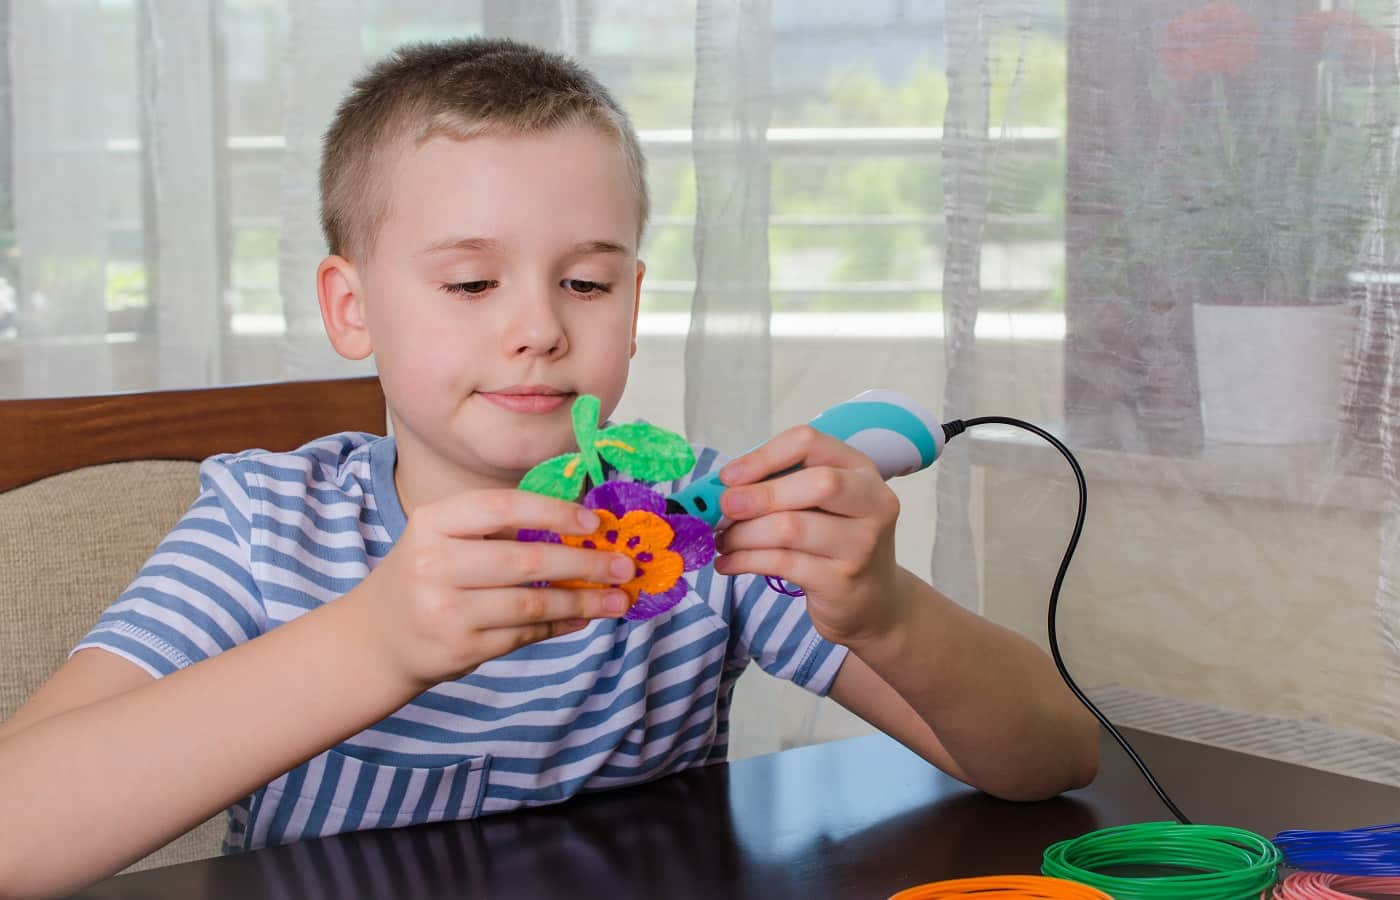 Boy using 3D pen. Happy child making flower from colored ABS plastic. Creative hobby at home, technology, leisure, education concept.